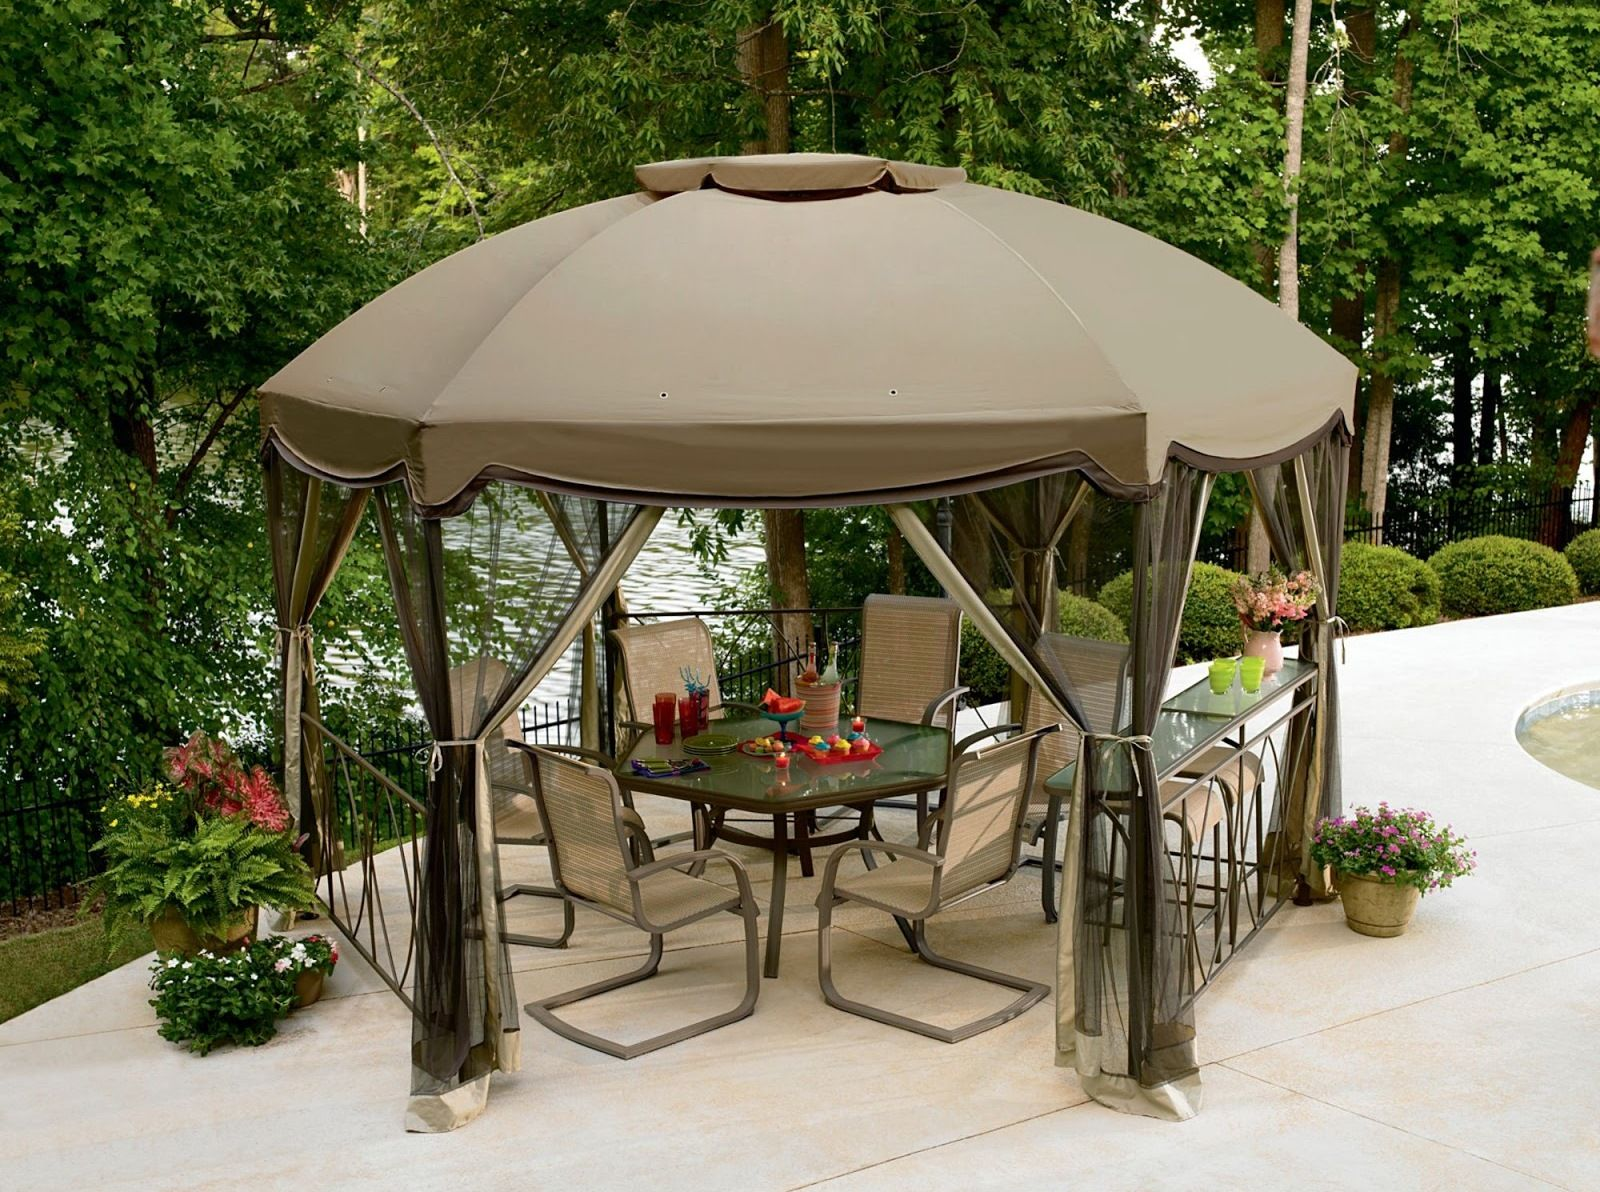 Superb Gazebo Canopy With A Circular Roof